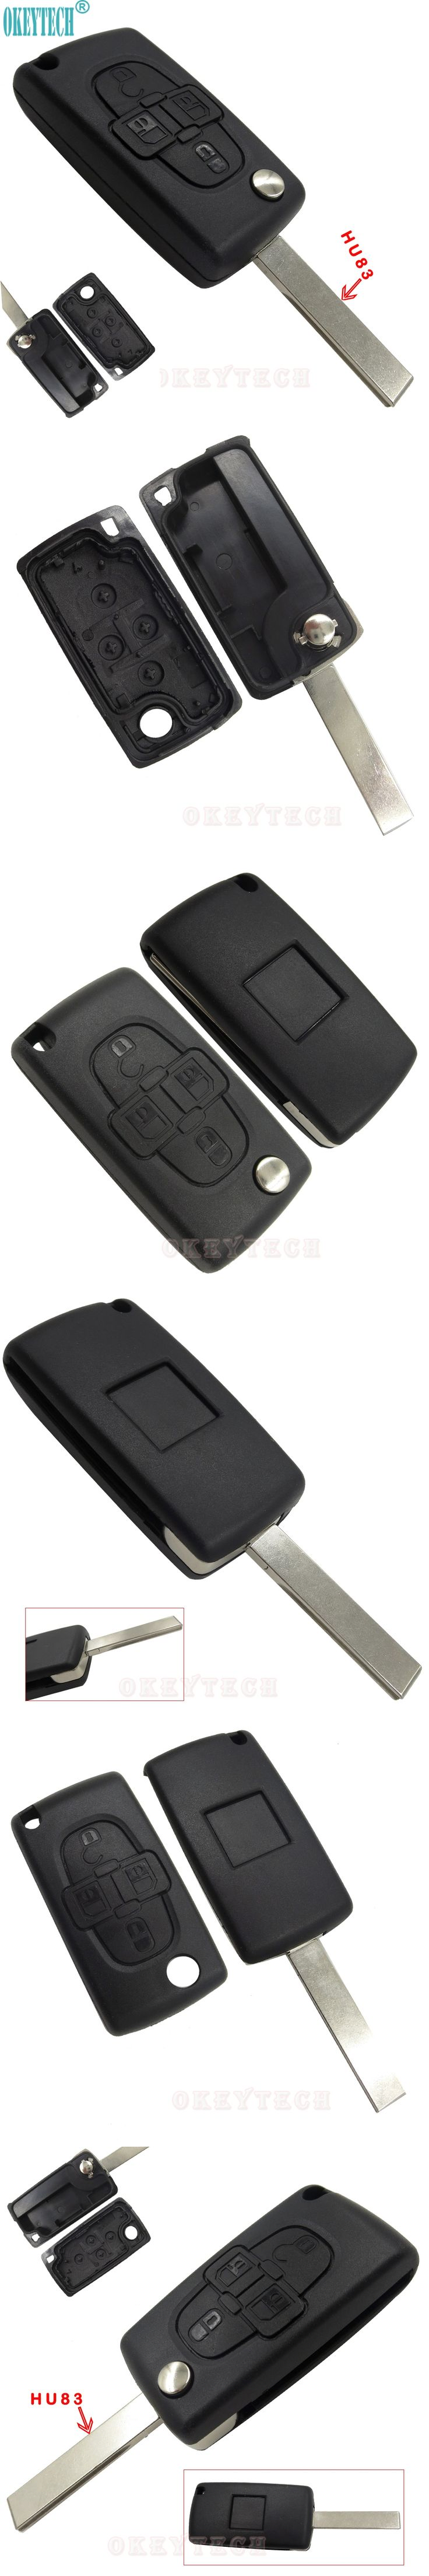 OkeyTech New Auto Folding Remote FOB Key Case For PEUGEOT 1007 For Citroen C8 4 Buttons Remote Key Cover Housing Flip Key Shell